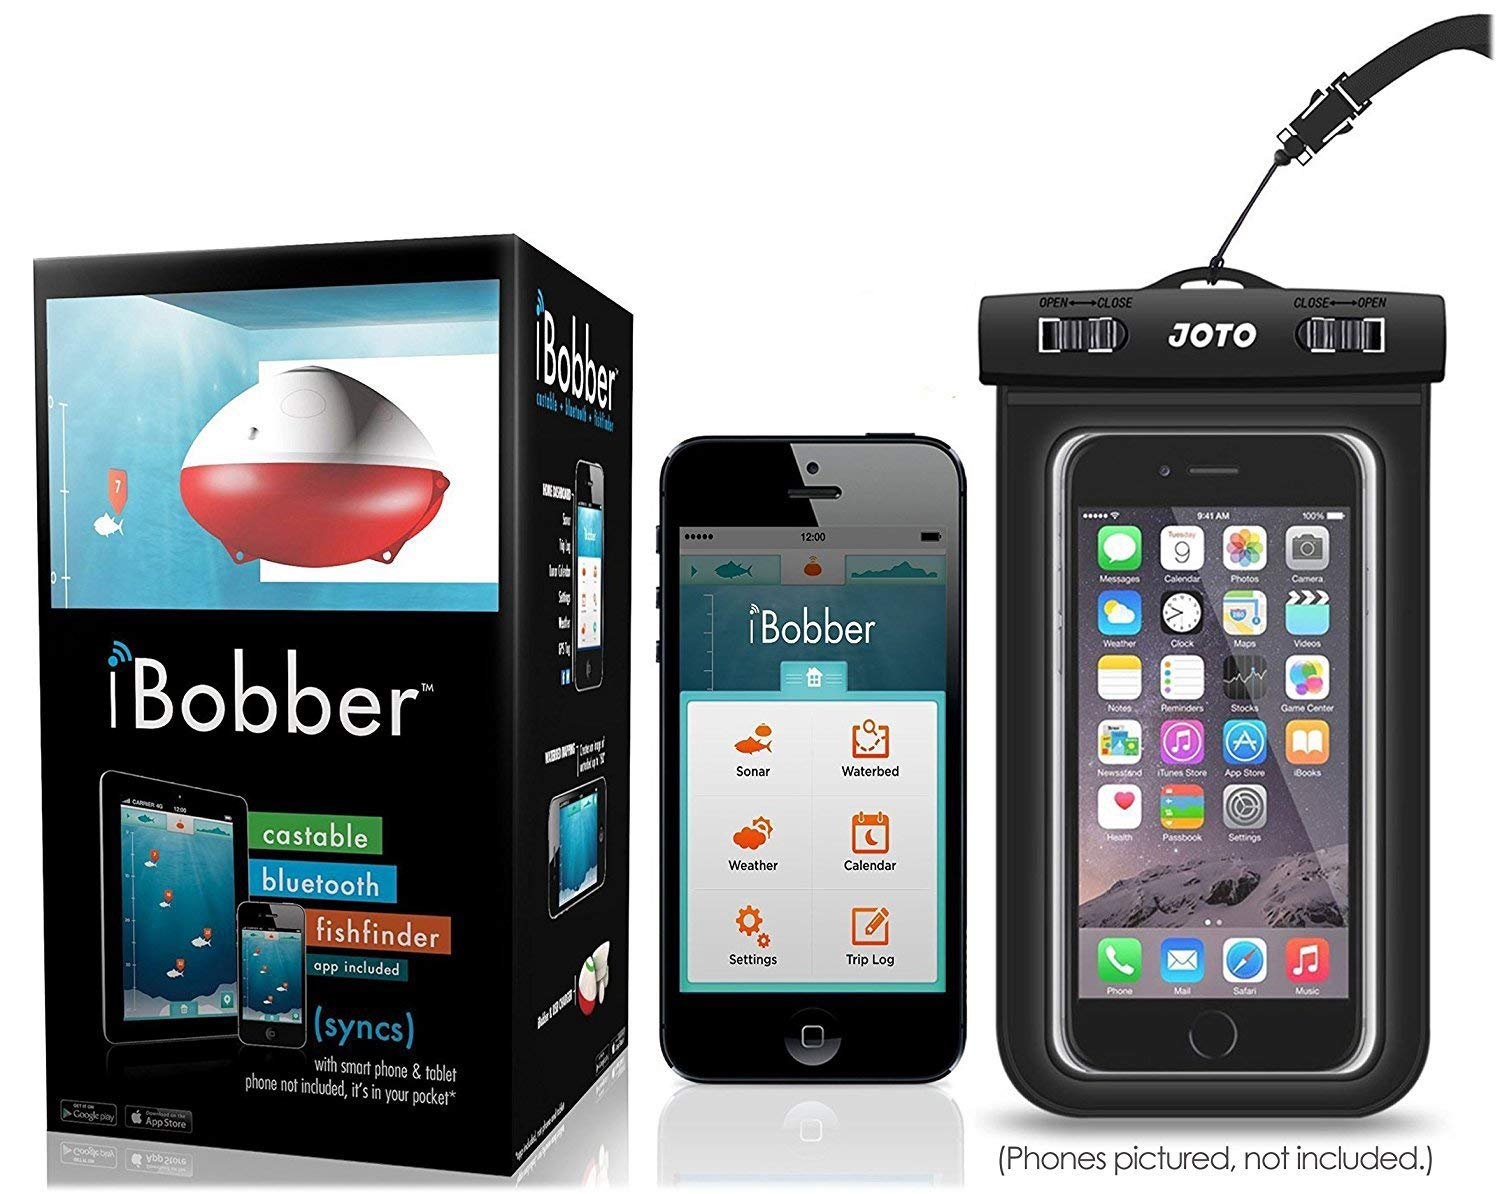 iBobber Wireless Bluetooth Smart Fish Finder for iOS and Android devices & JOTO Universal Waterproof CellPhone Case (Bundle) by iBobber Bundle